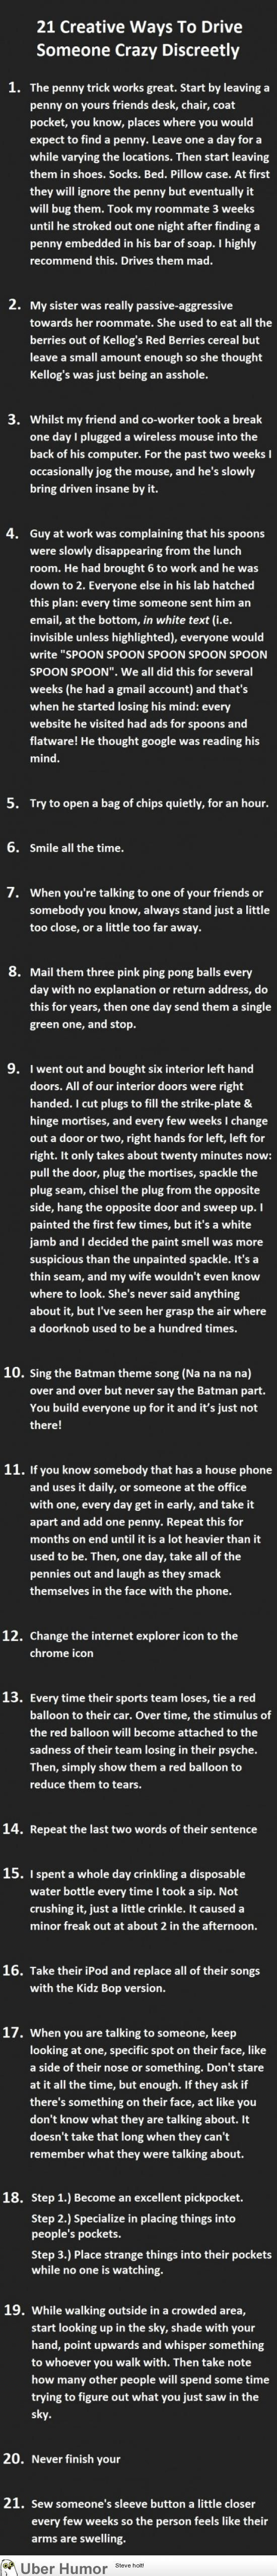 how to annoy someone!